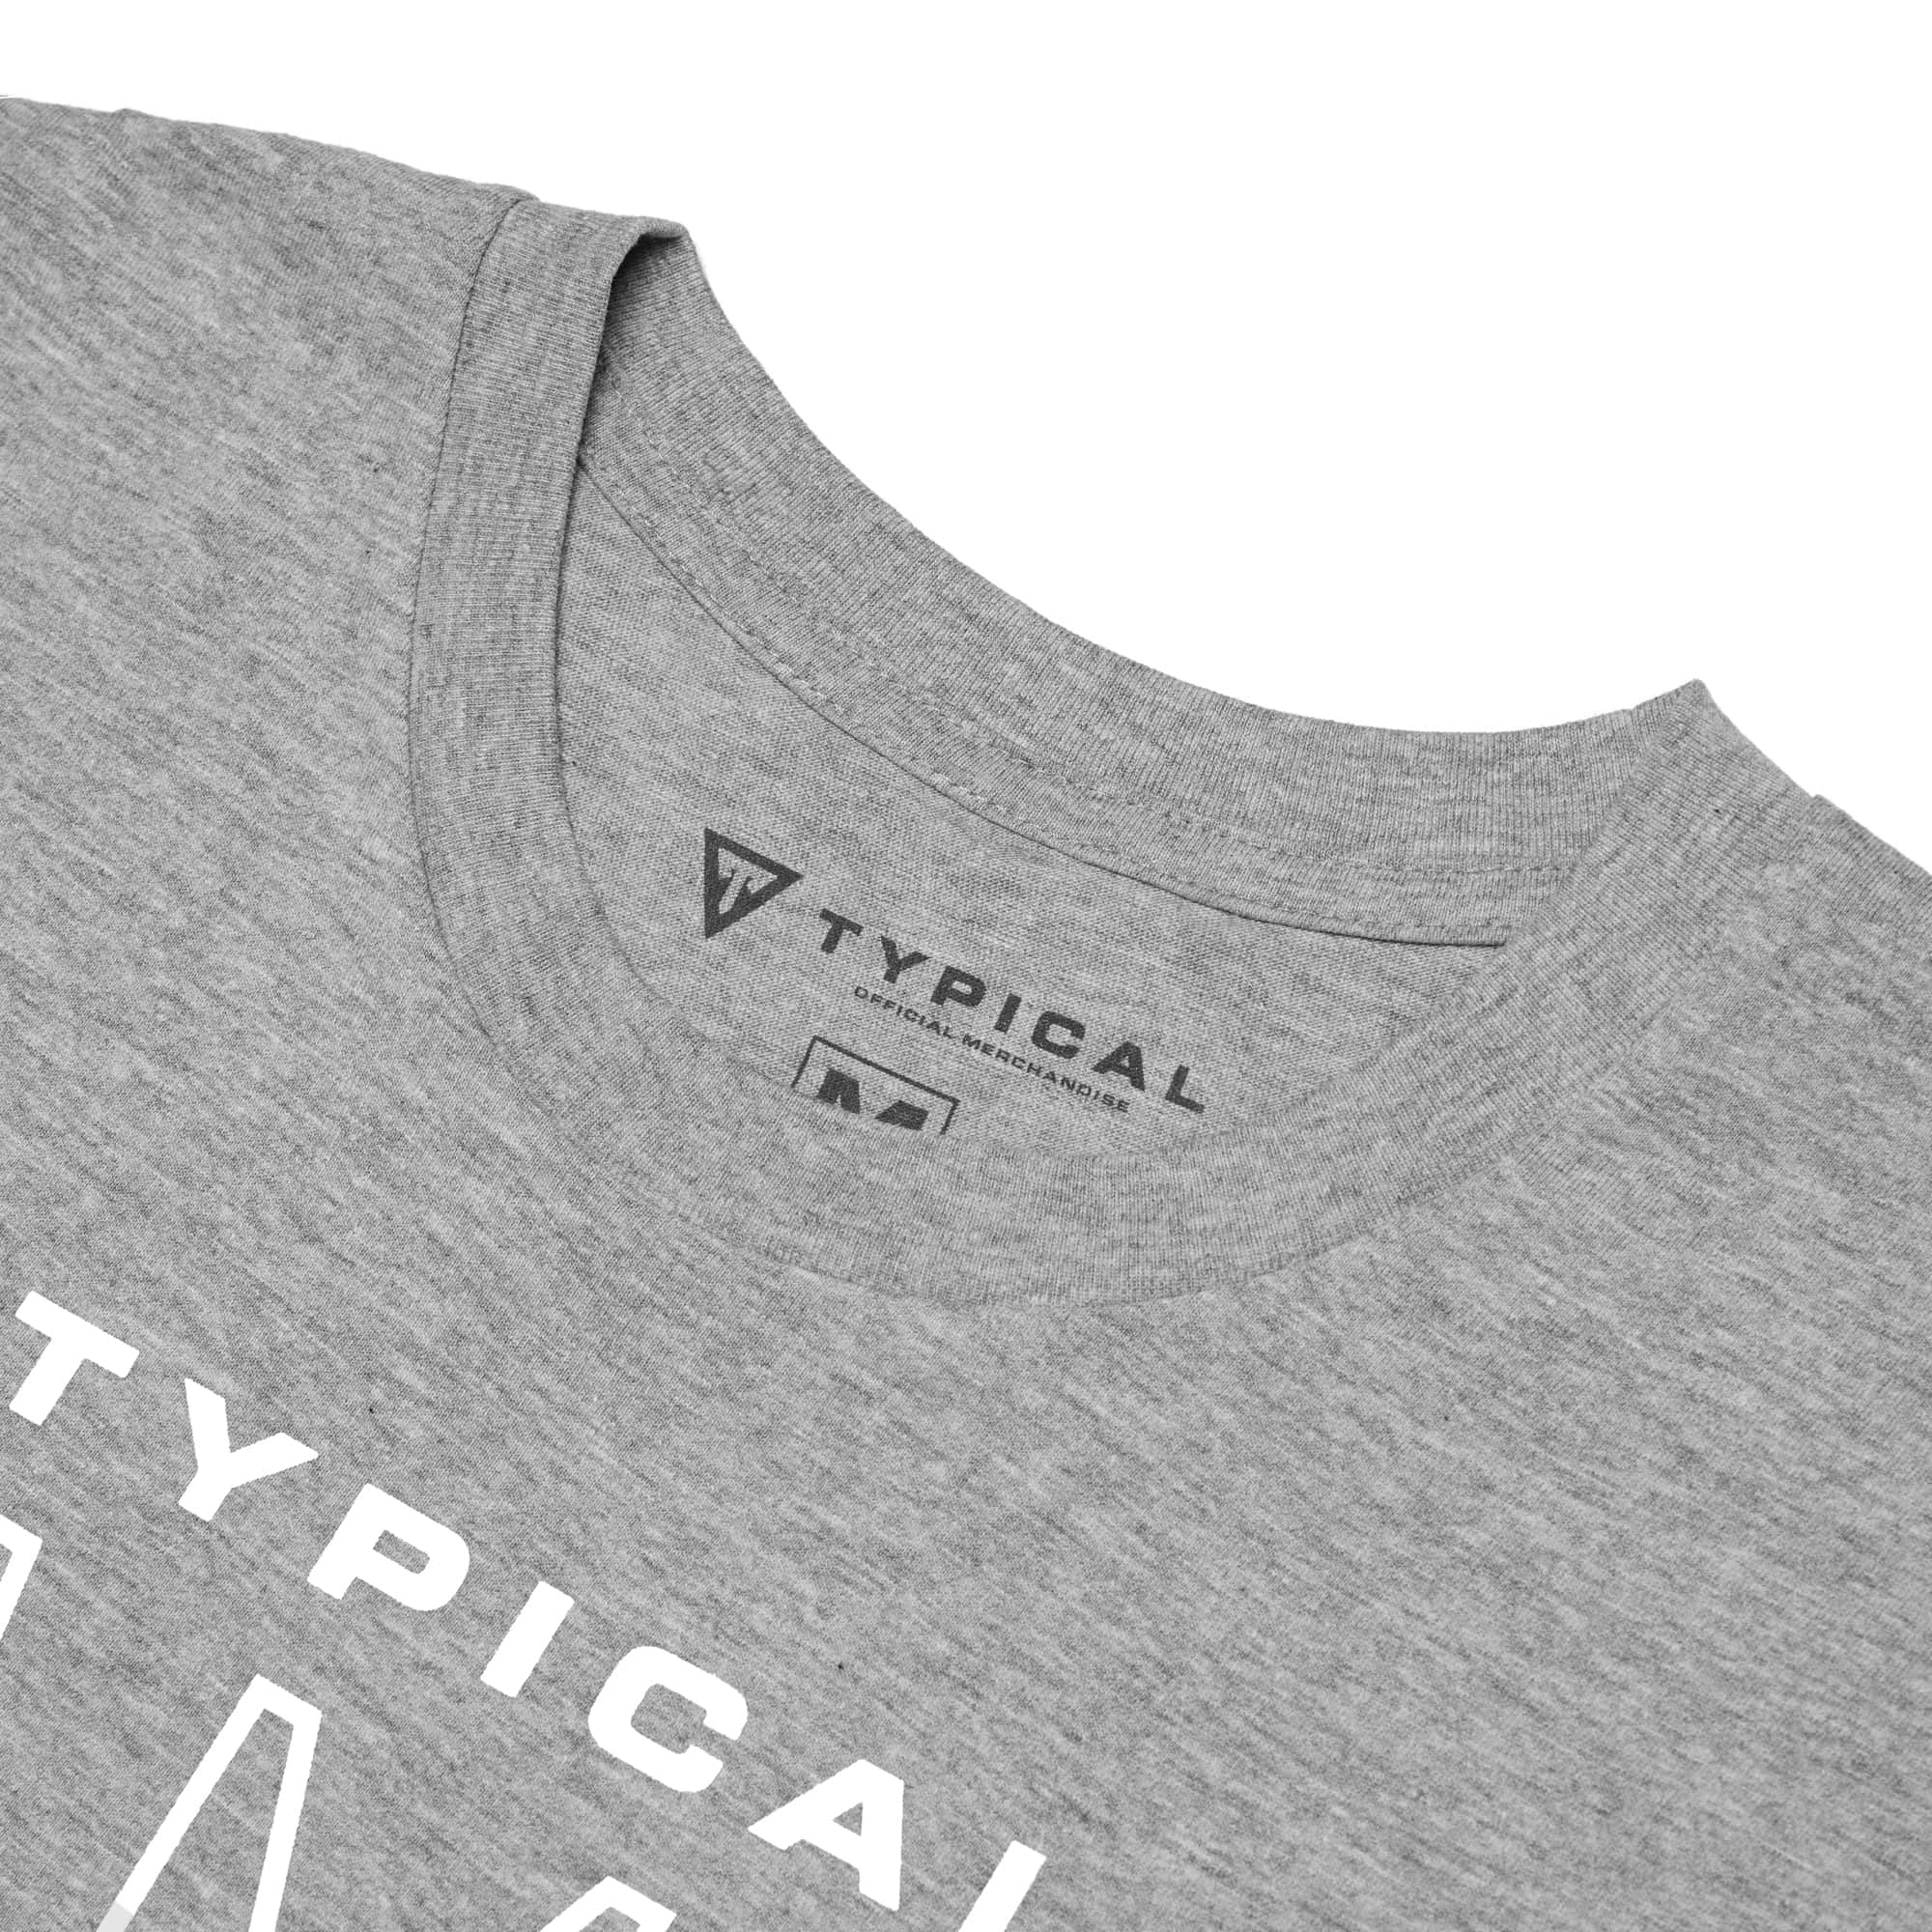 Typical Gamer 'Season 3' Tee - Heather Grey